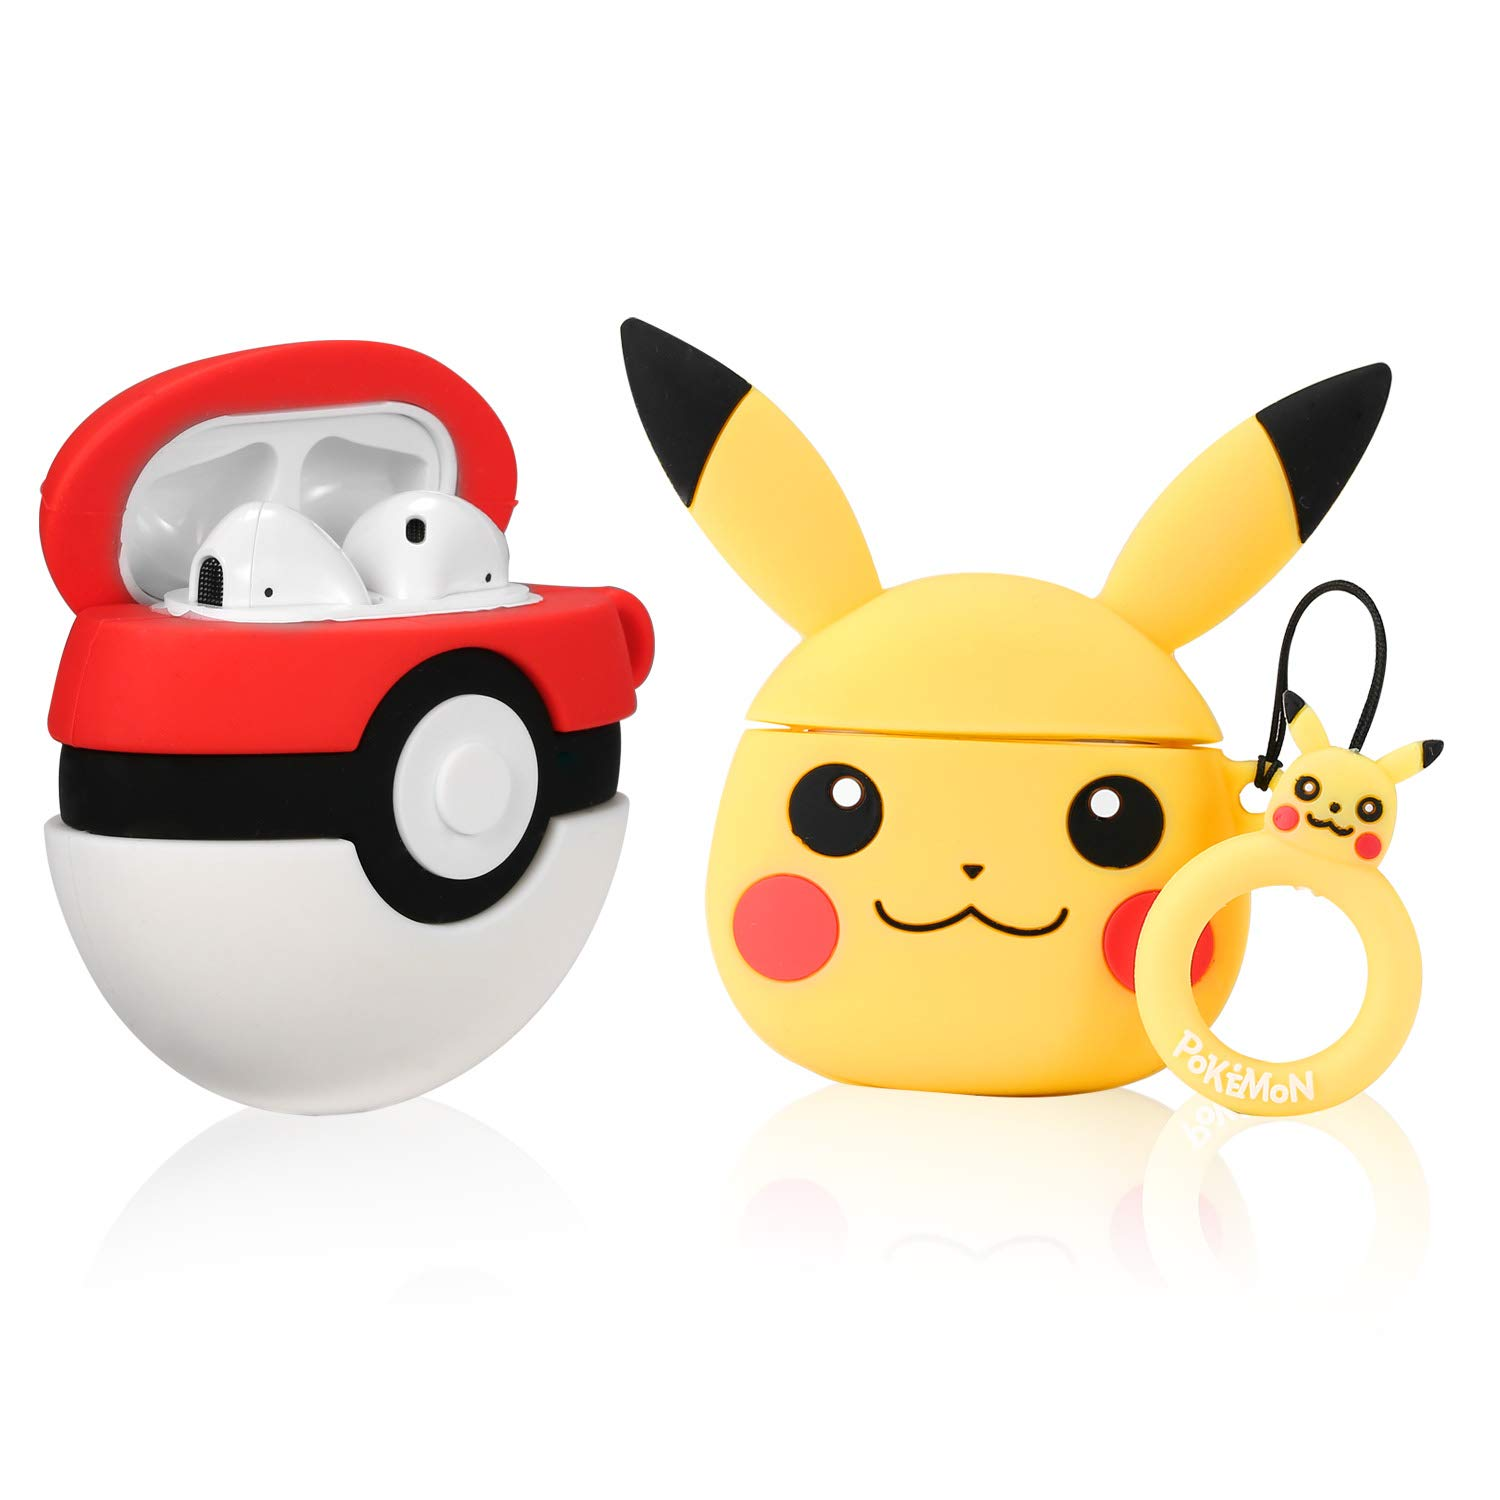 Lupct (Pikacu & Elf Ball) Case for Airpods 1/2 Cute Soft Silicone,Cartoon 3D Fun Animal Pattern Cover for Girls Kids Teens Character Design Airpod Funny Kawaii Cases for Air pods (2 Pack)